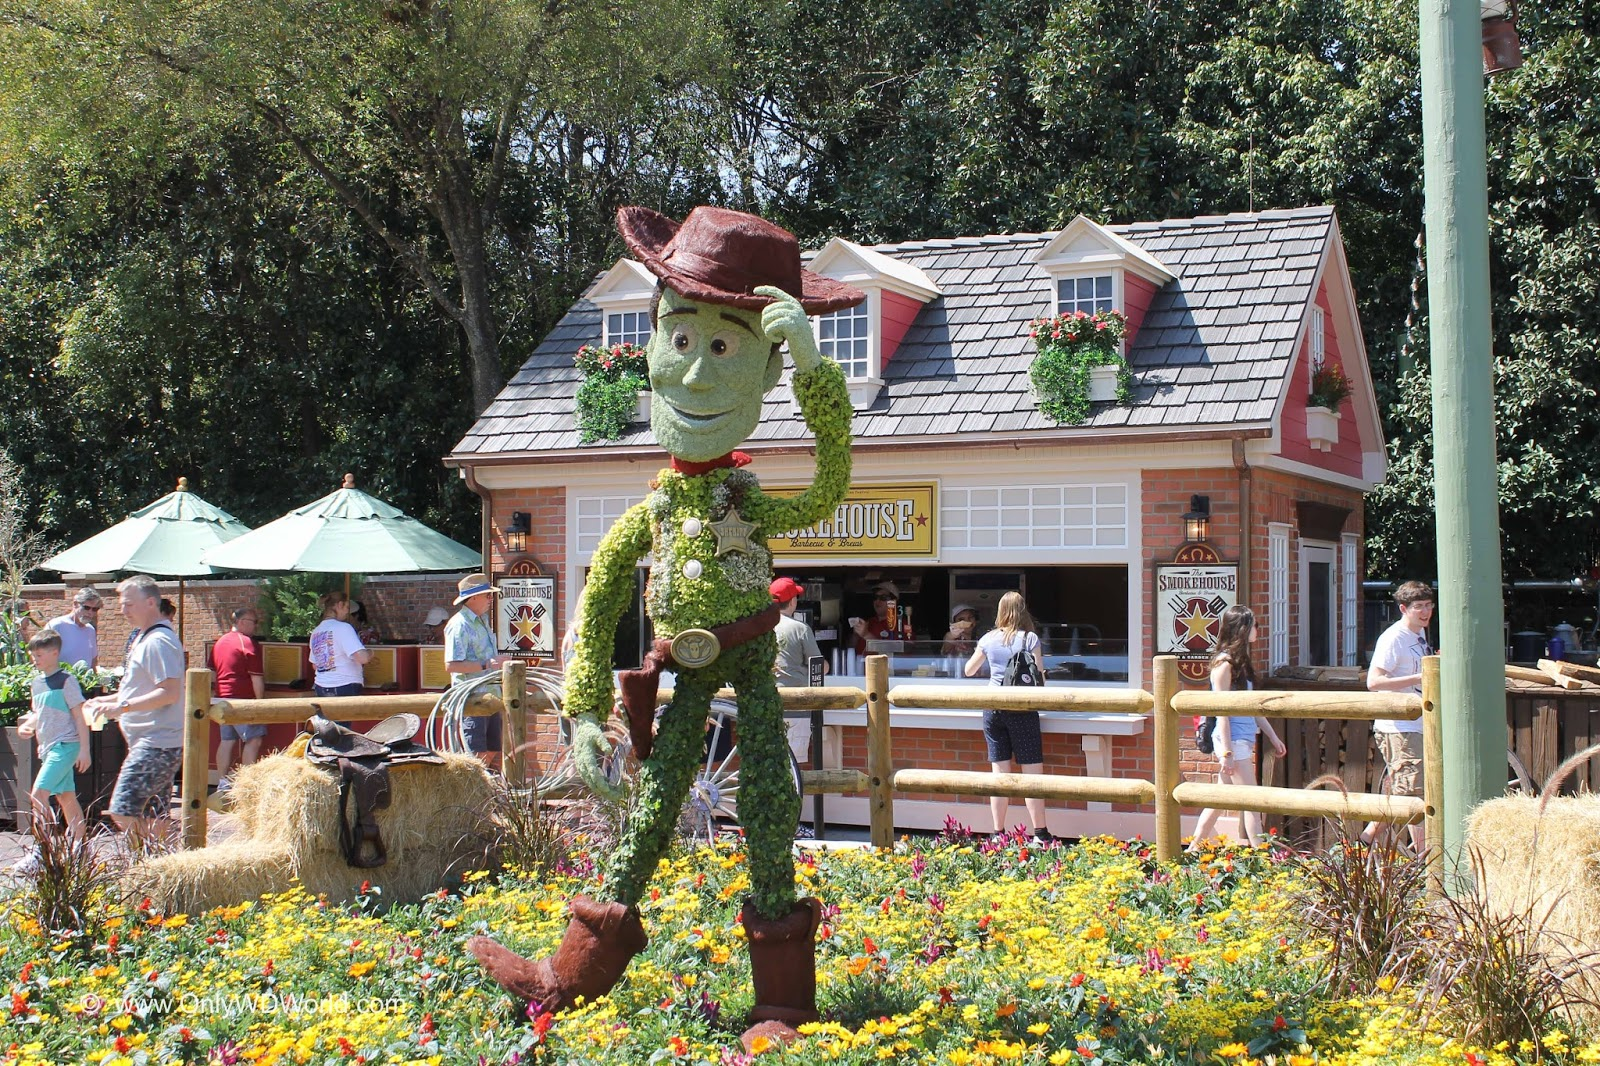 disney world blog discussing parks, resorts, discounts and dining